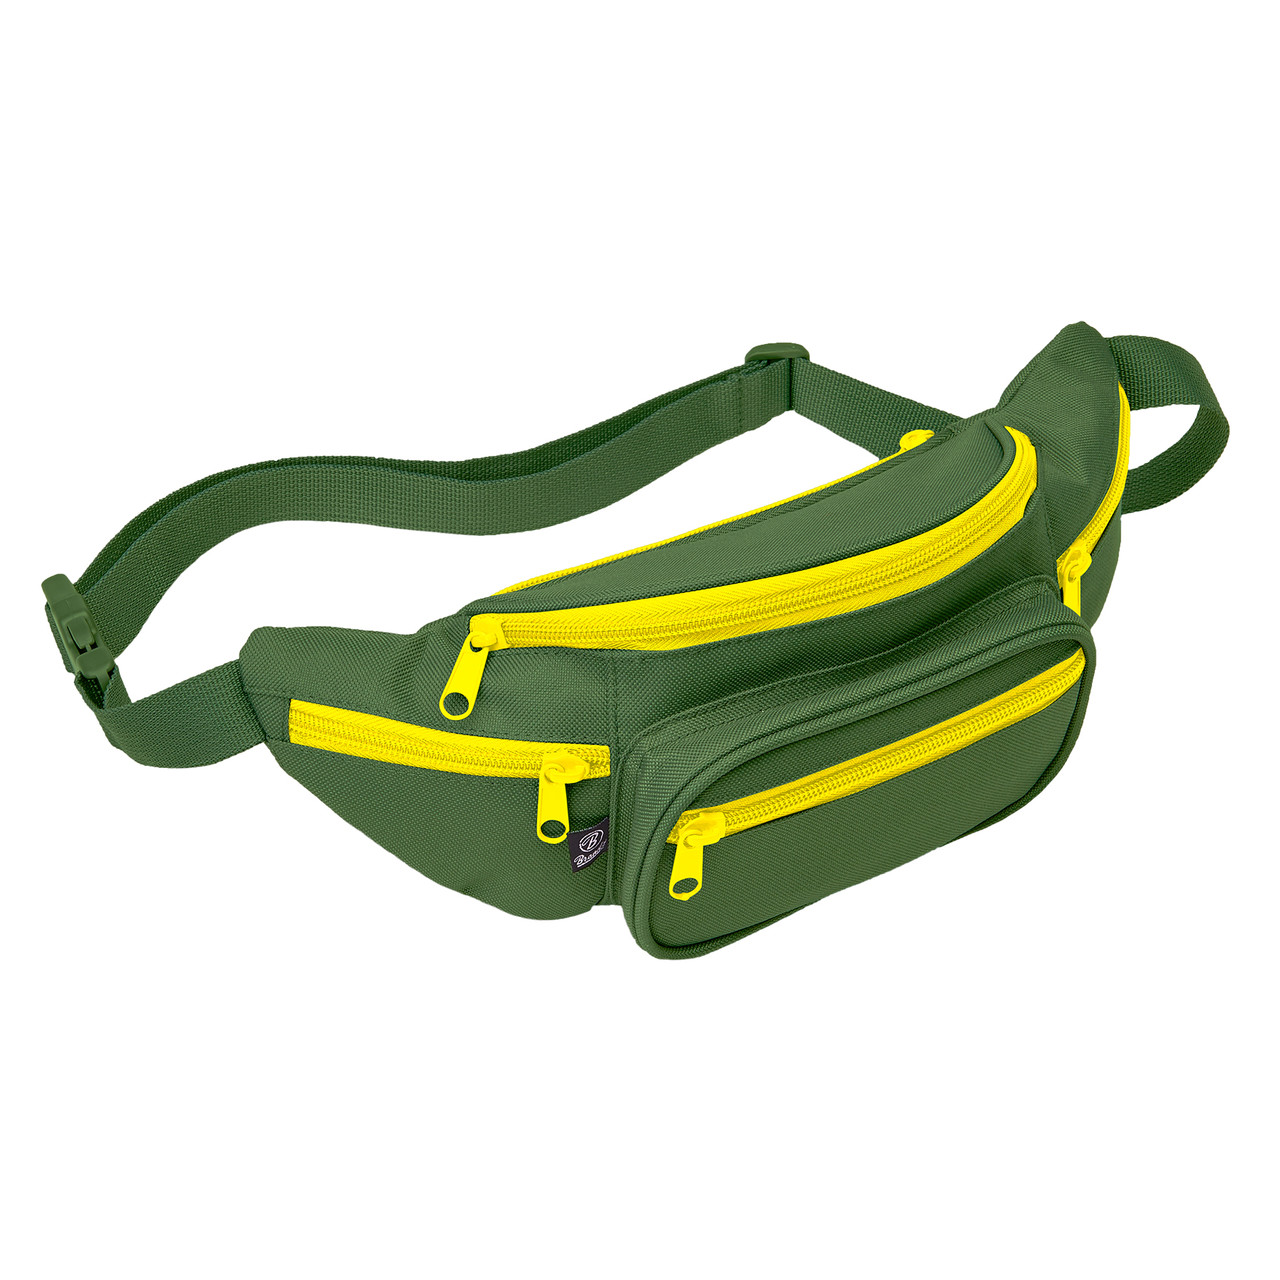 Сумка поясная Brandit Waist belt bag Oliv-yellow